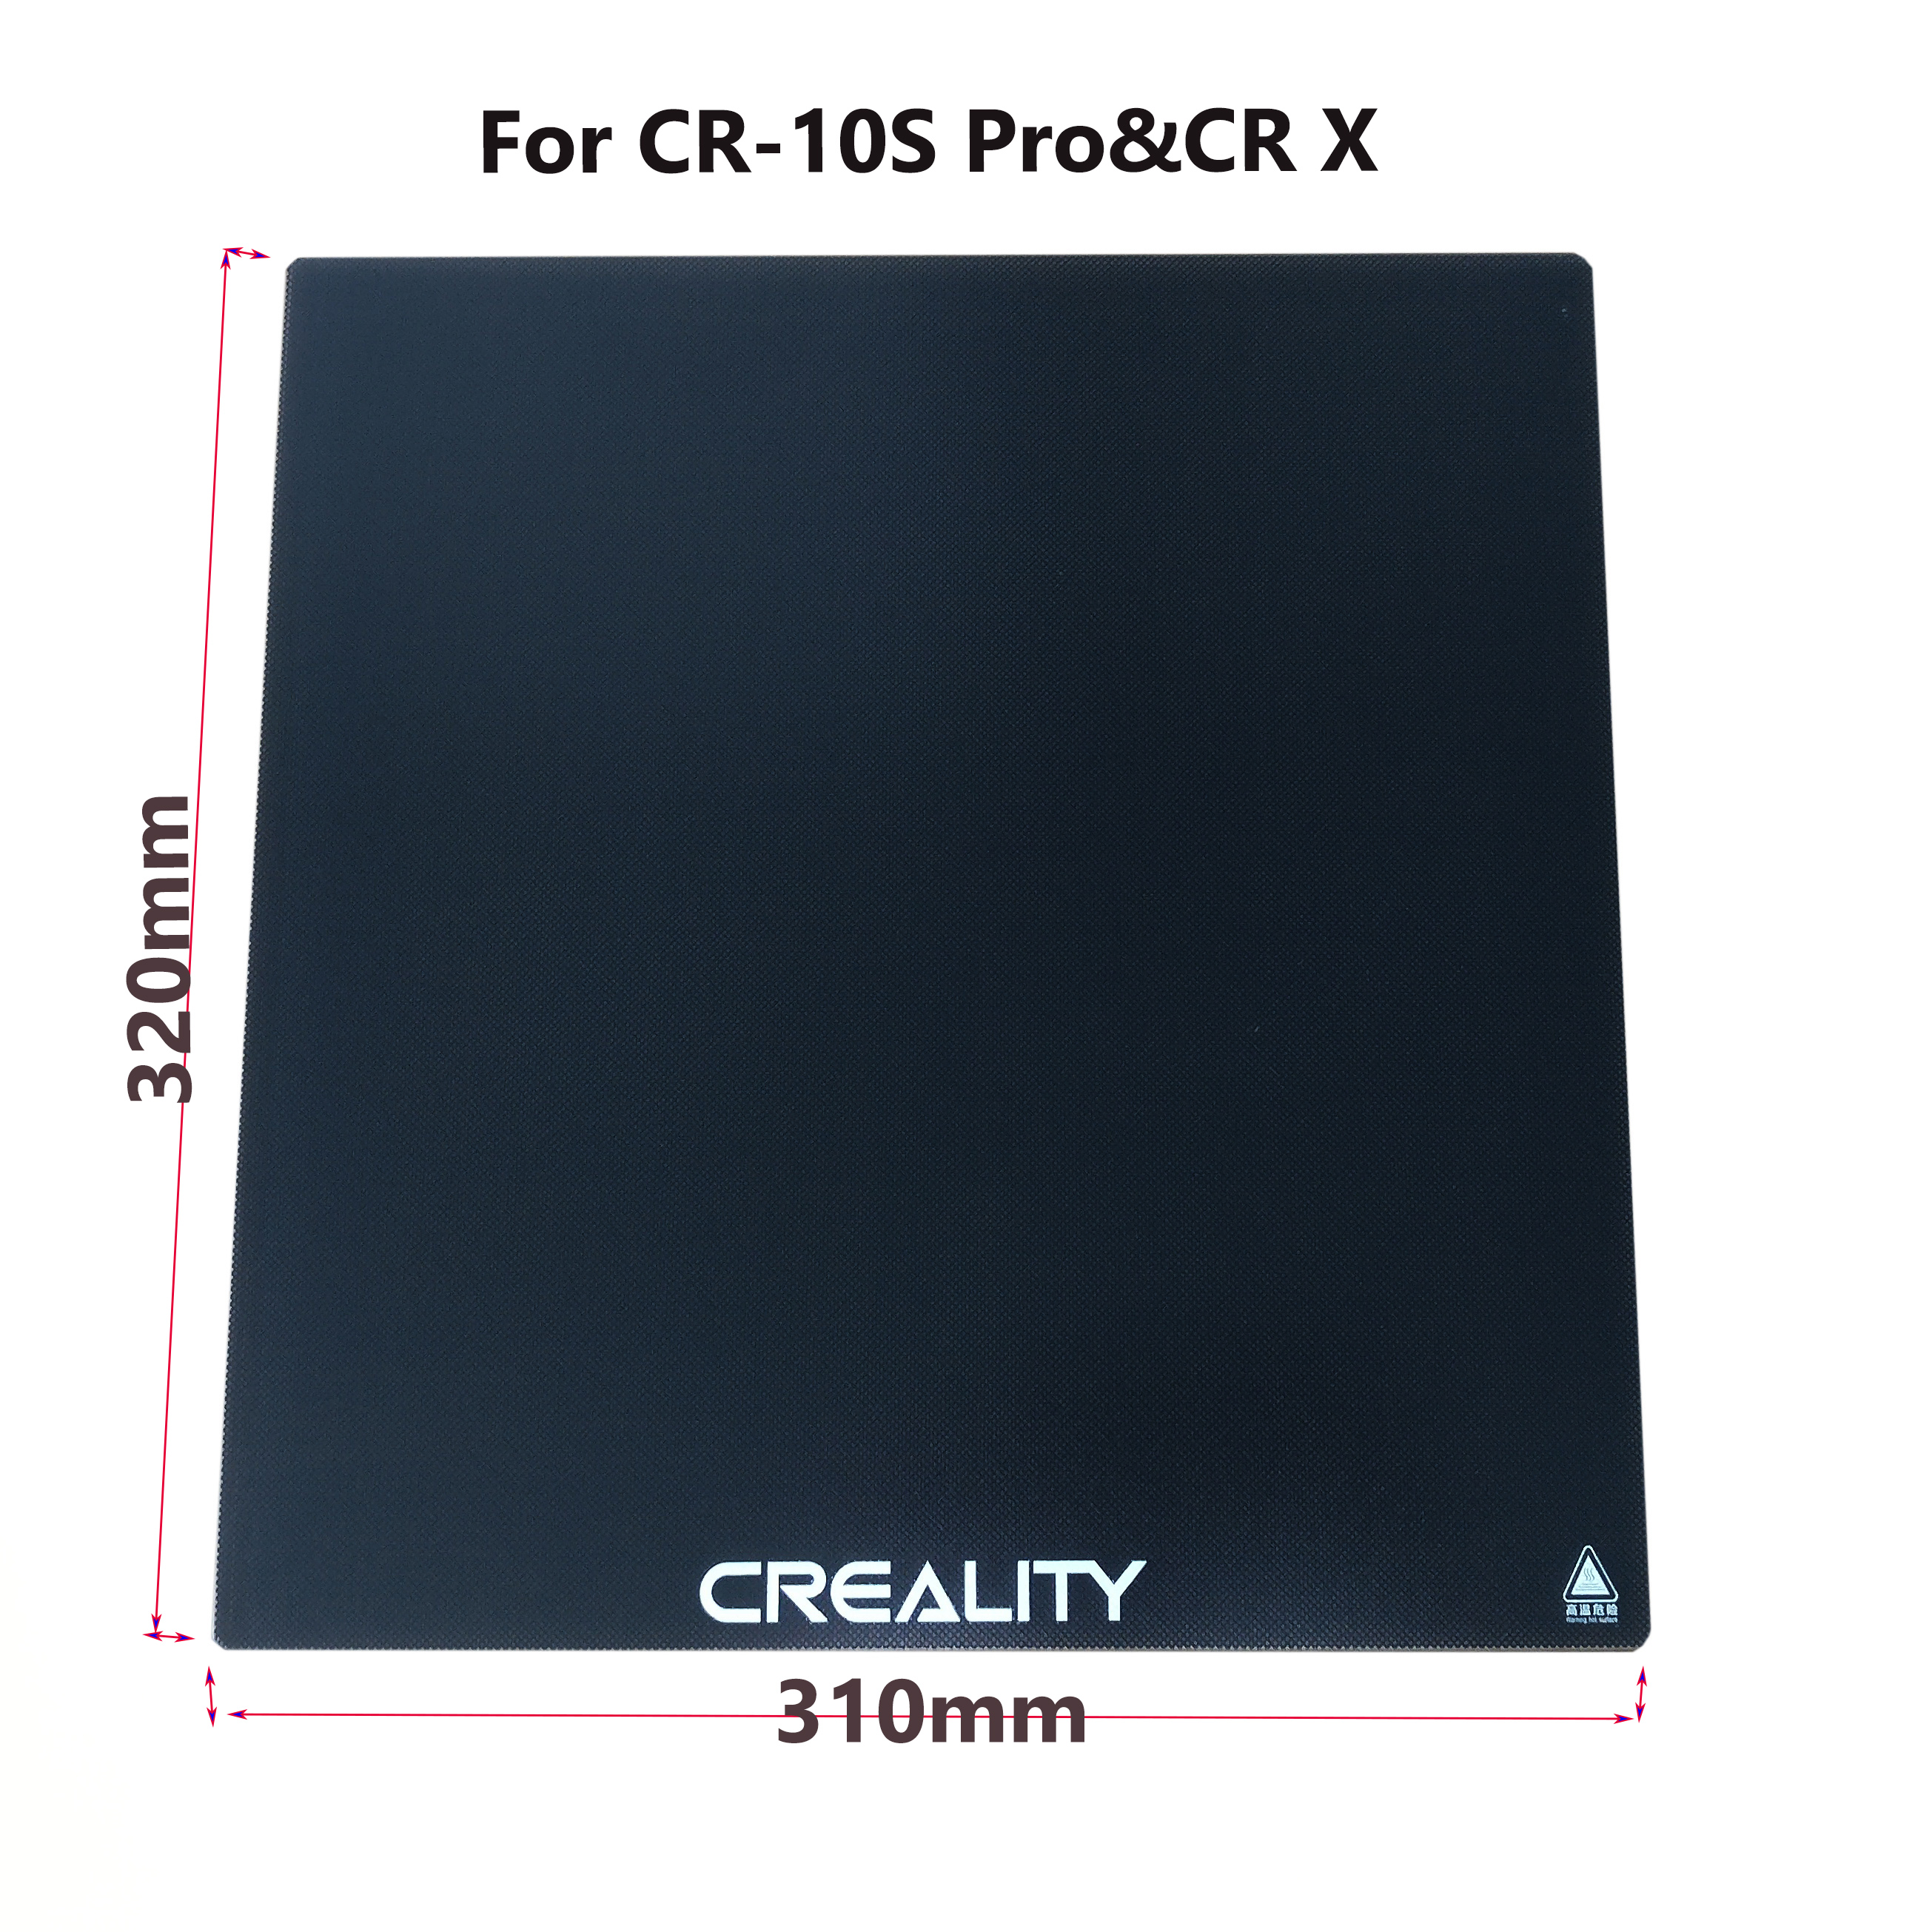 320 310mm New Creality 3D Ultrabase 3D Printer Platform Heated Bed Build Surface Glass plate for 10S pro CR X-in 3D Printer Parts & Accessories from Computer & Office    1